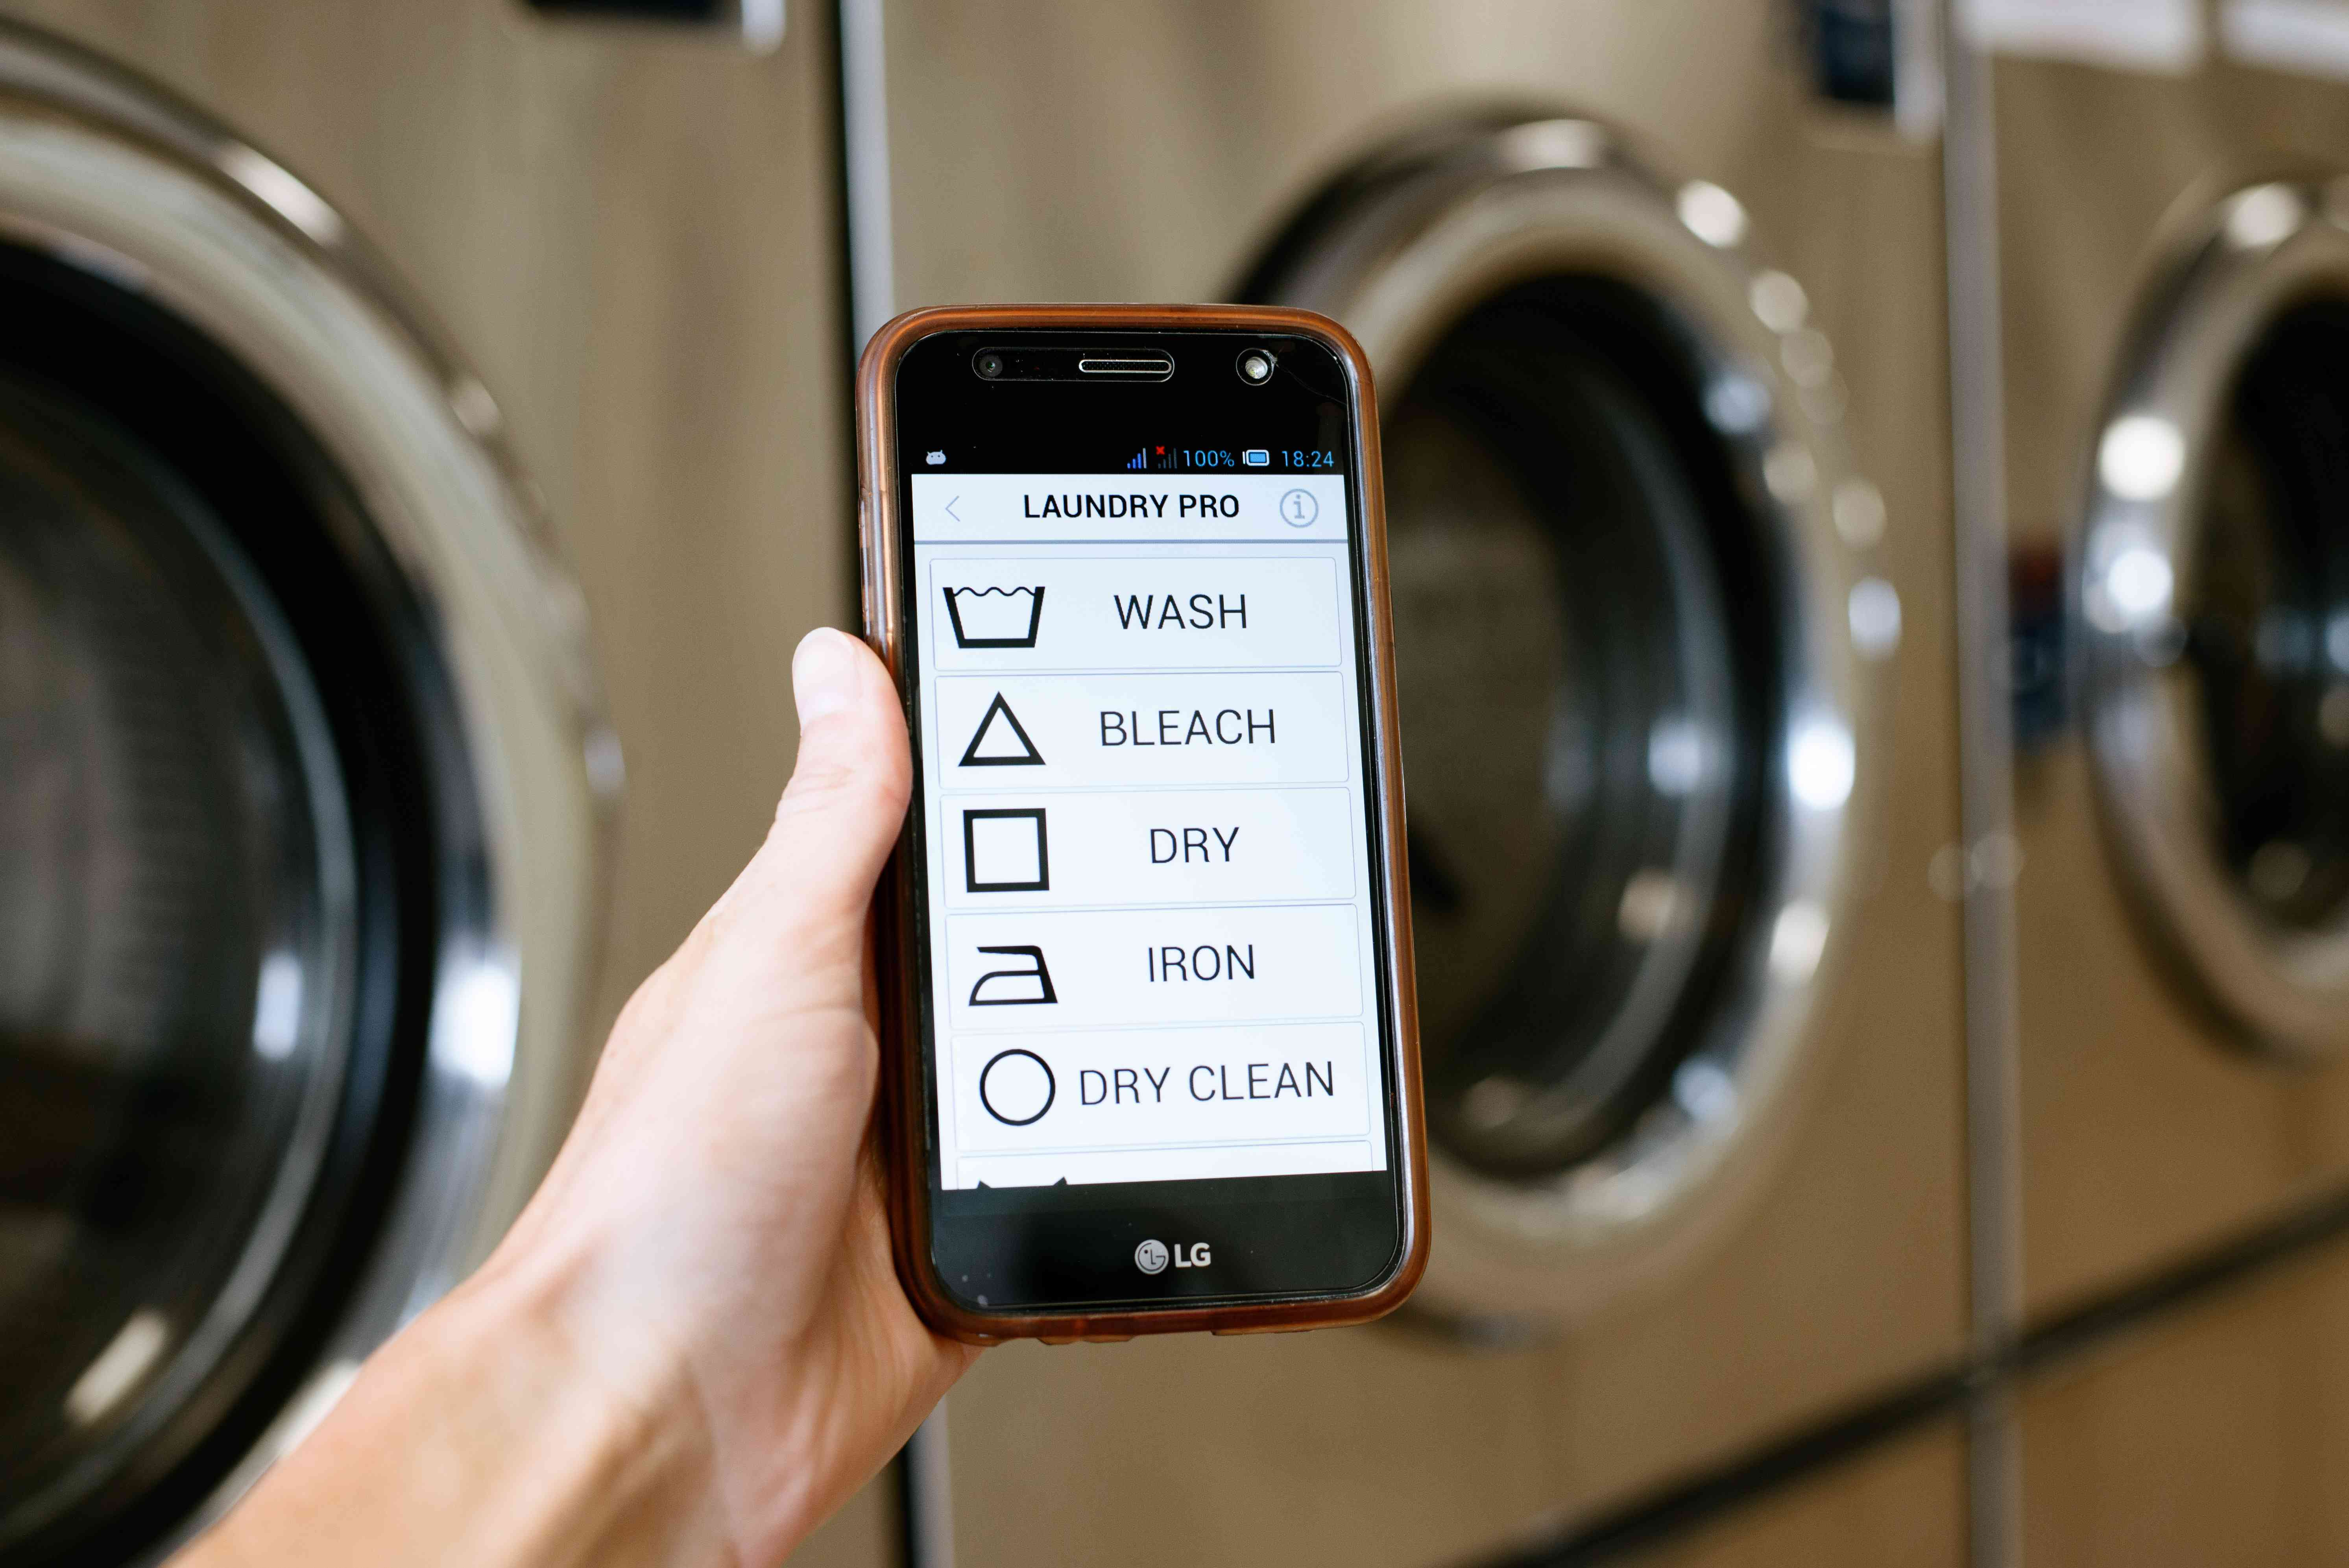 Smart phone laundry app to keep track of laundromat cycles